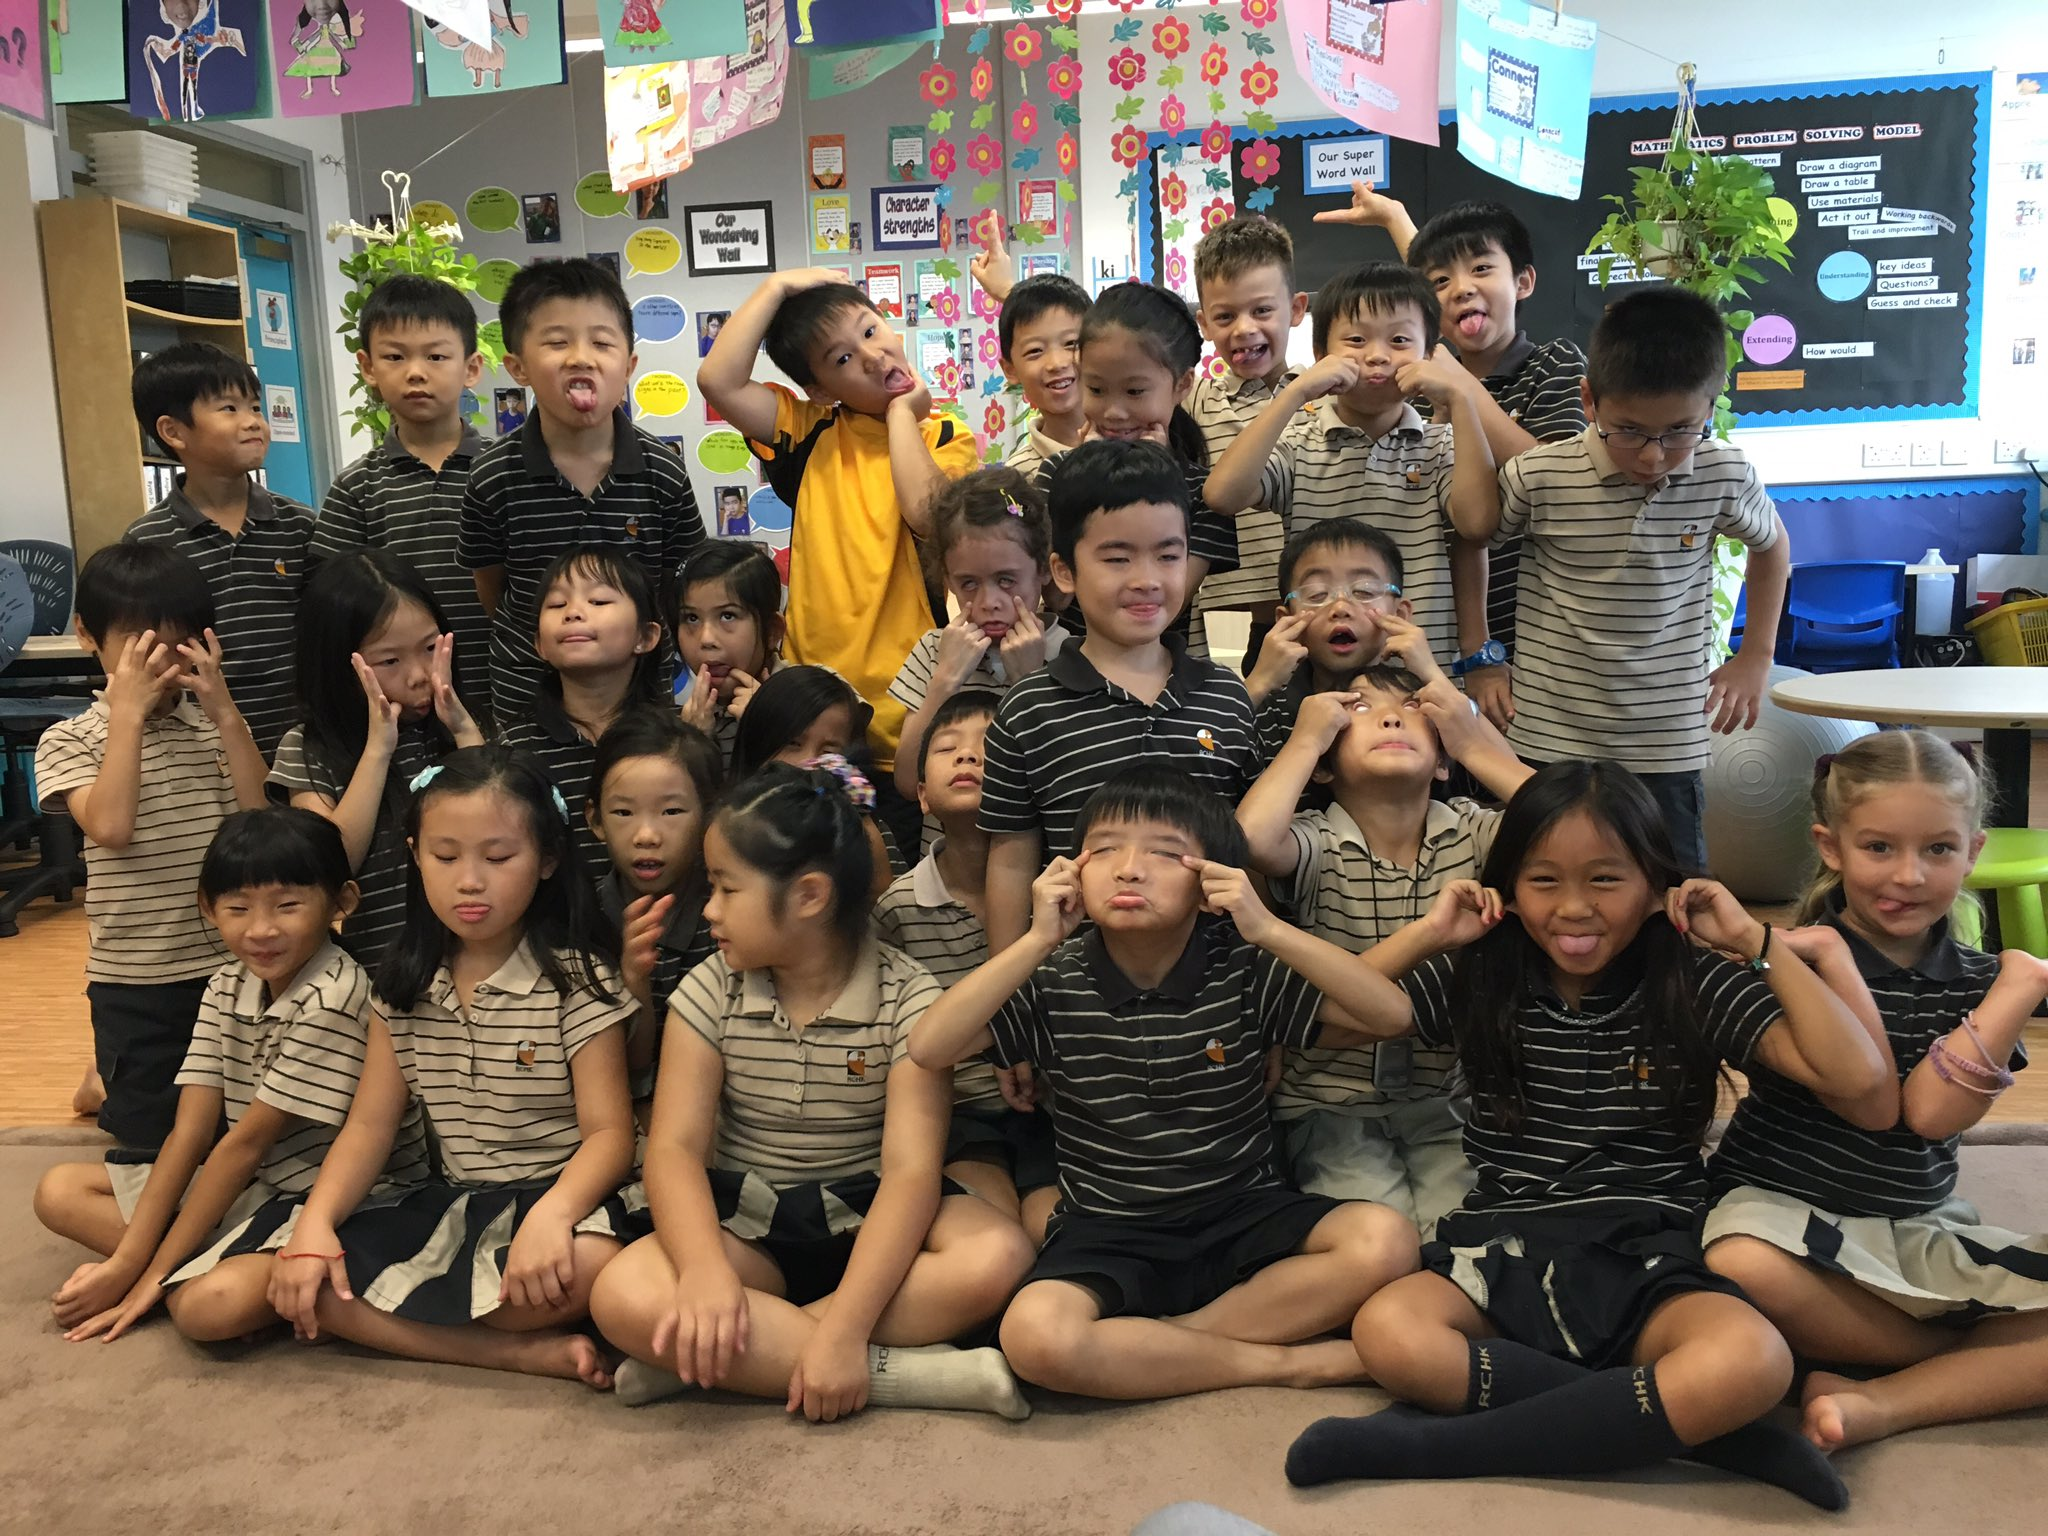 Hello @RESVTlibrary we're excited to meet you! Here are the funny faces of 3LT! #rchkpyp #awesome3LT https://t.co/A9FHKljBFU